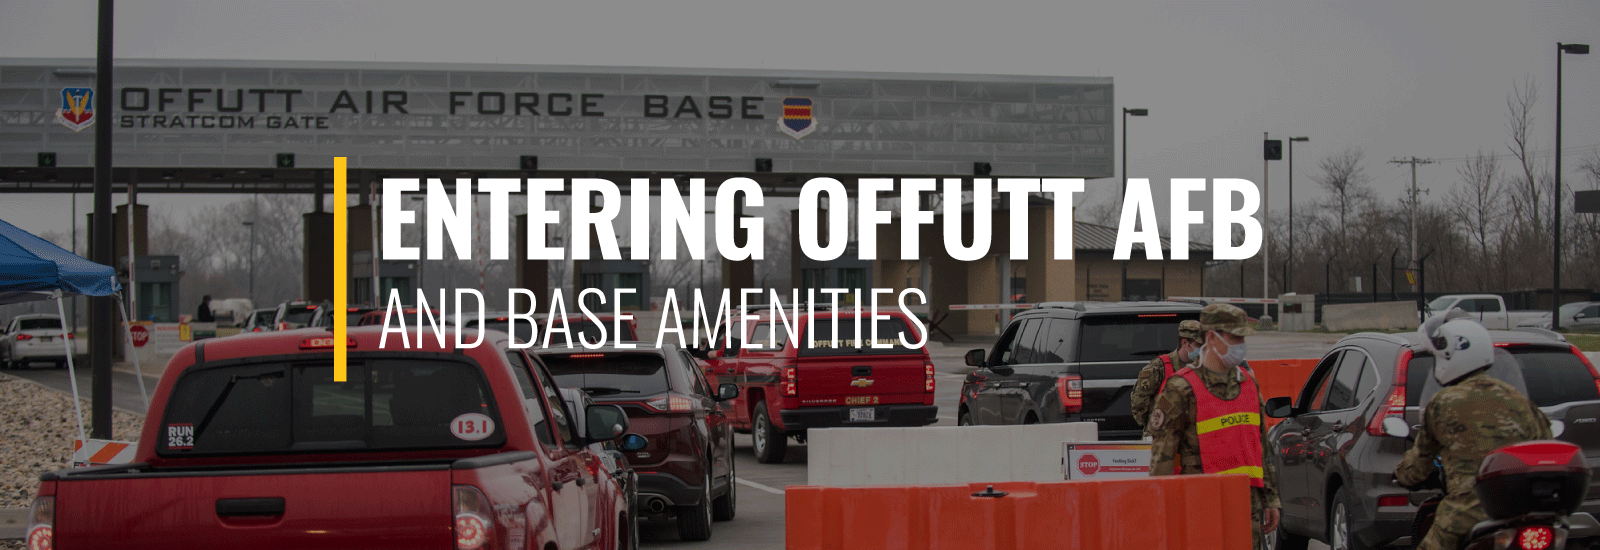 Entering Offutt Air Force Base and Amenities